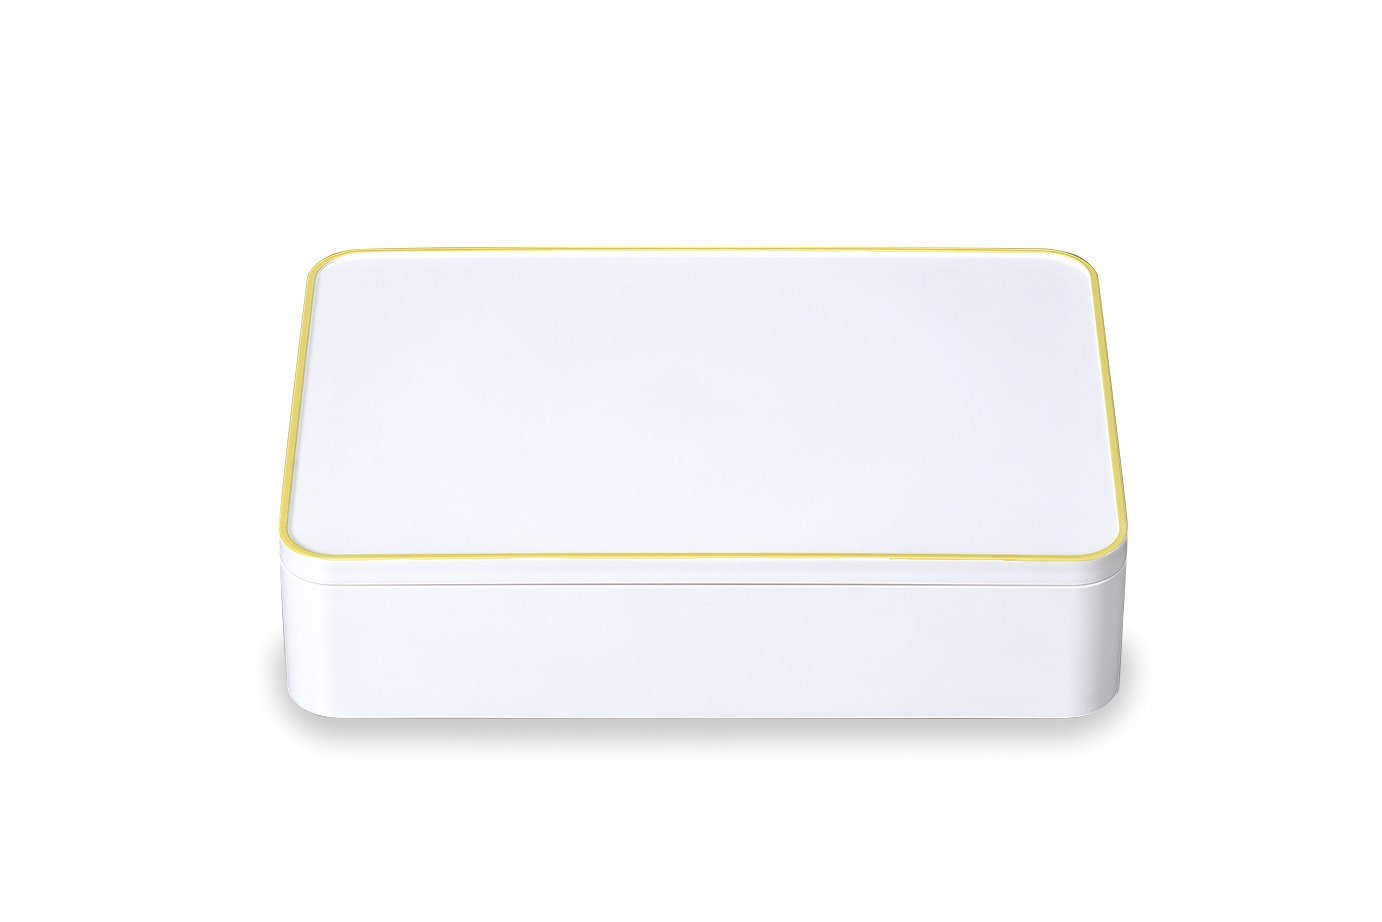 Irodori Shokado Bento Box | Yellow by Showa - Bento&co Japanese Bento Lunch Boxes and Kitchenware Specialists